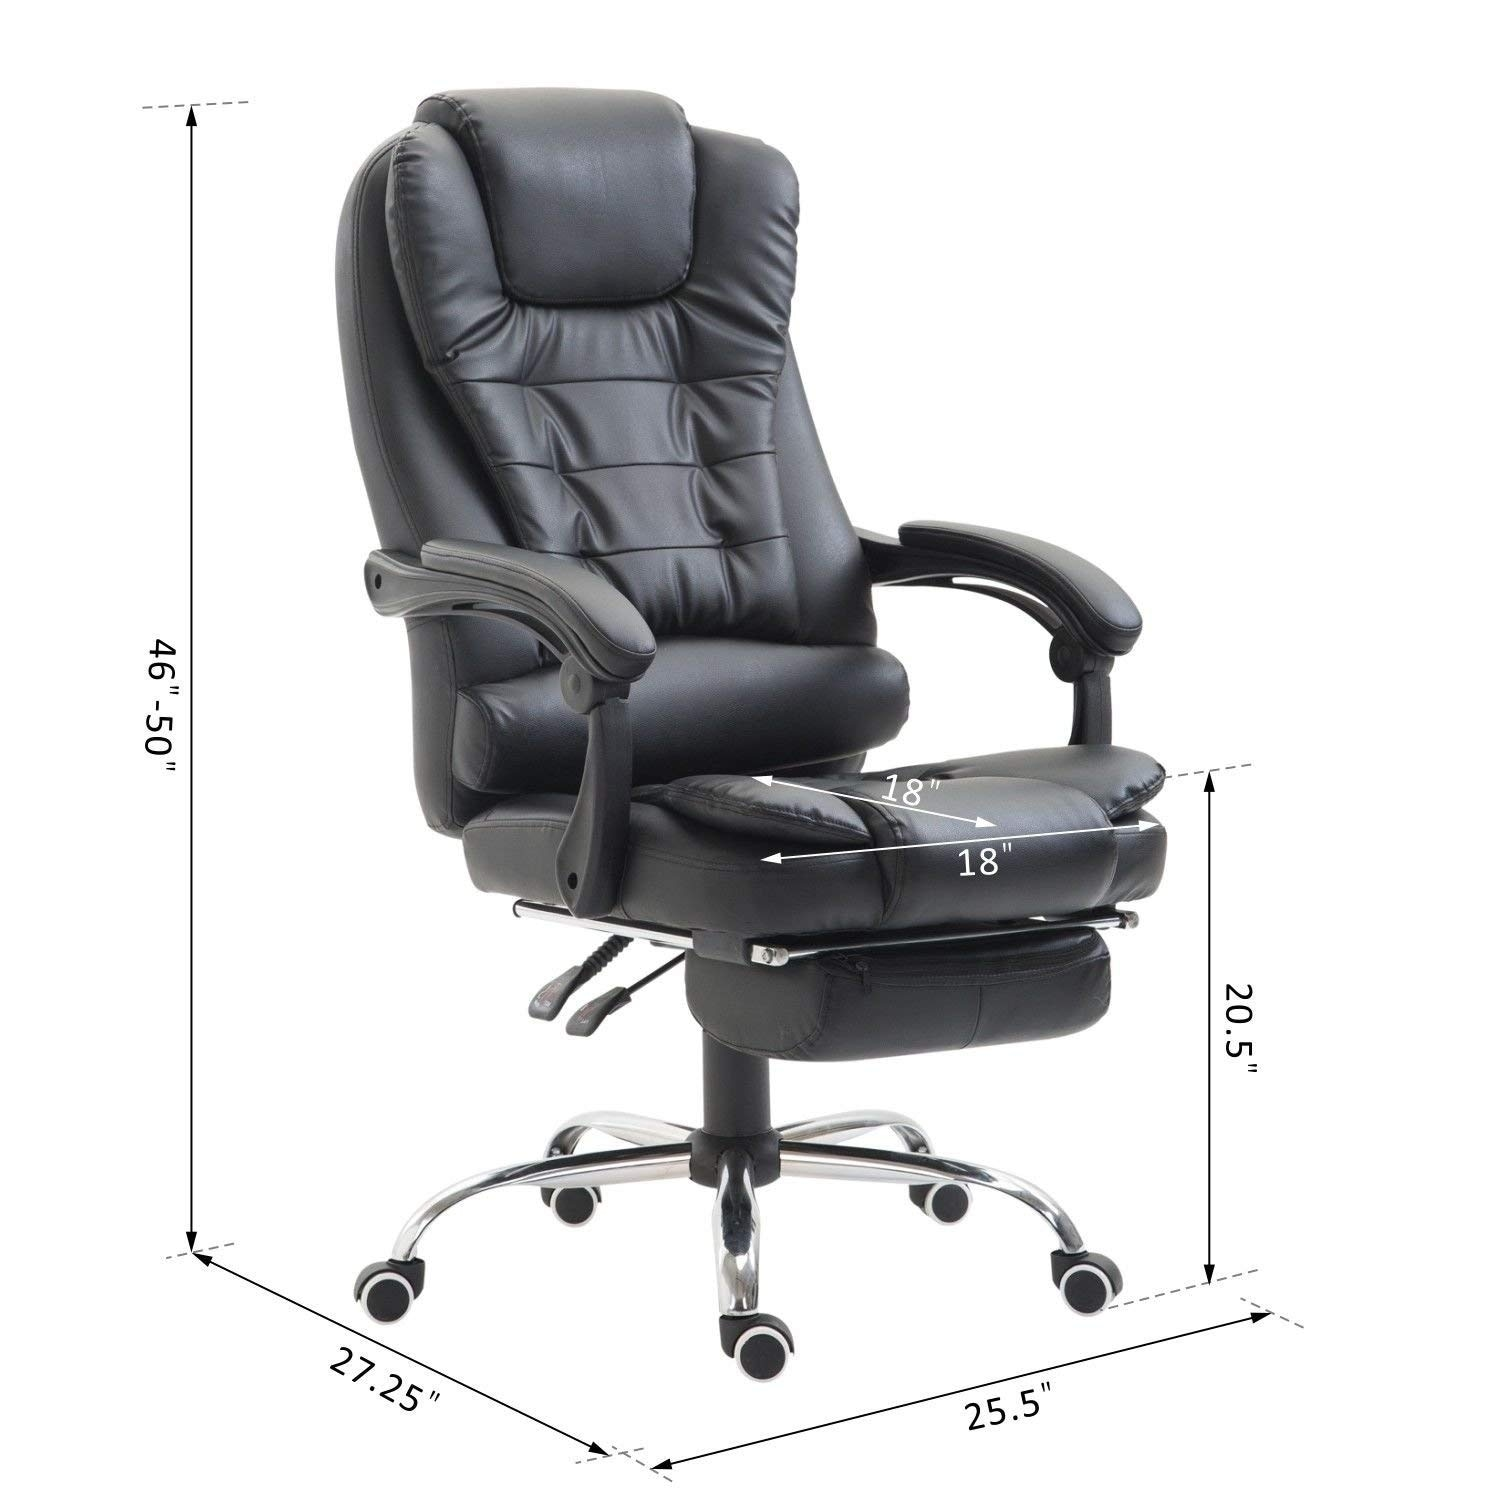 cheaper 921f9 64289 HomCom High Back Reclining PU Leather Executive Home Office Chair With  Retractable Footrest - Black